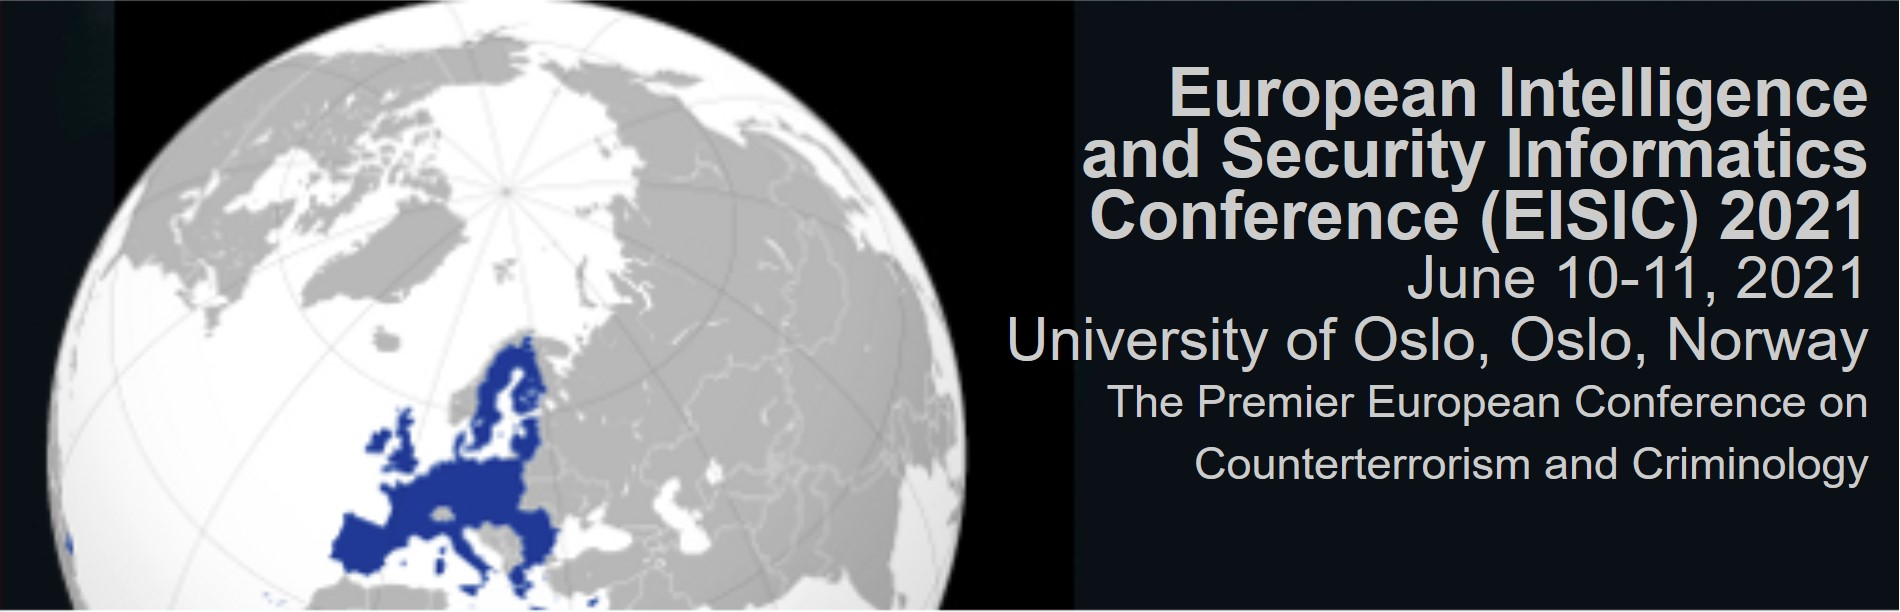 2021 European Intelligence and Security Informatics Conference (EISIC 2021)